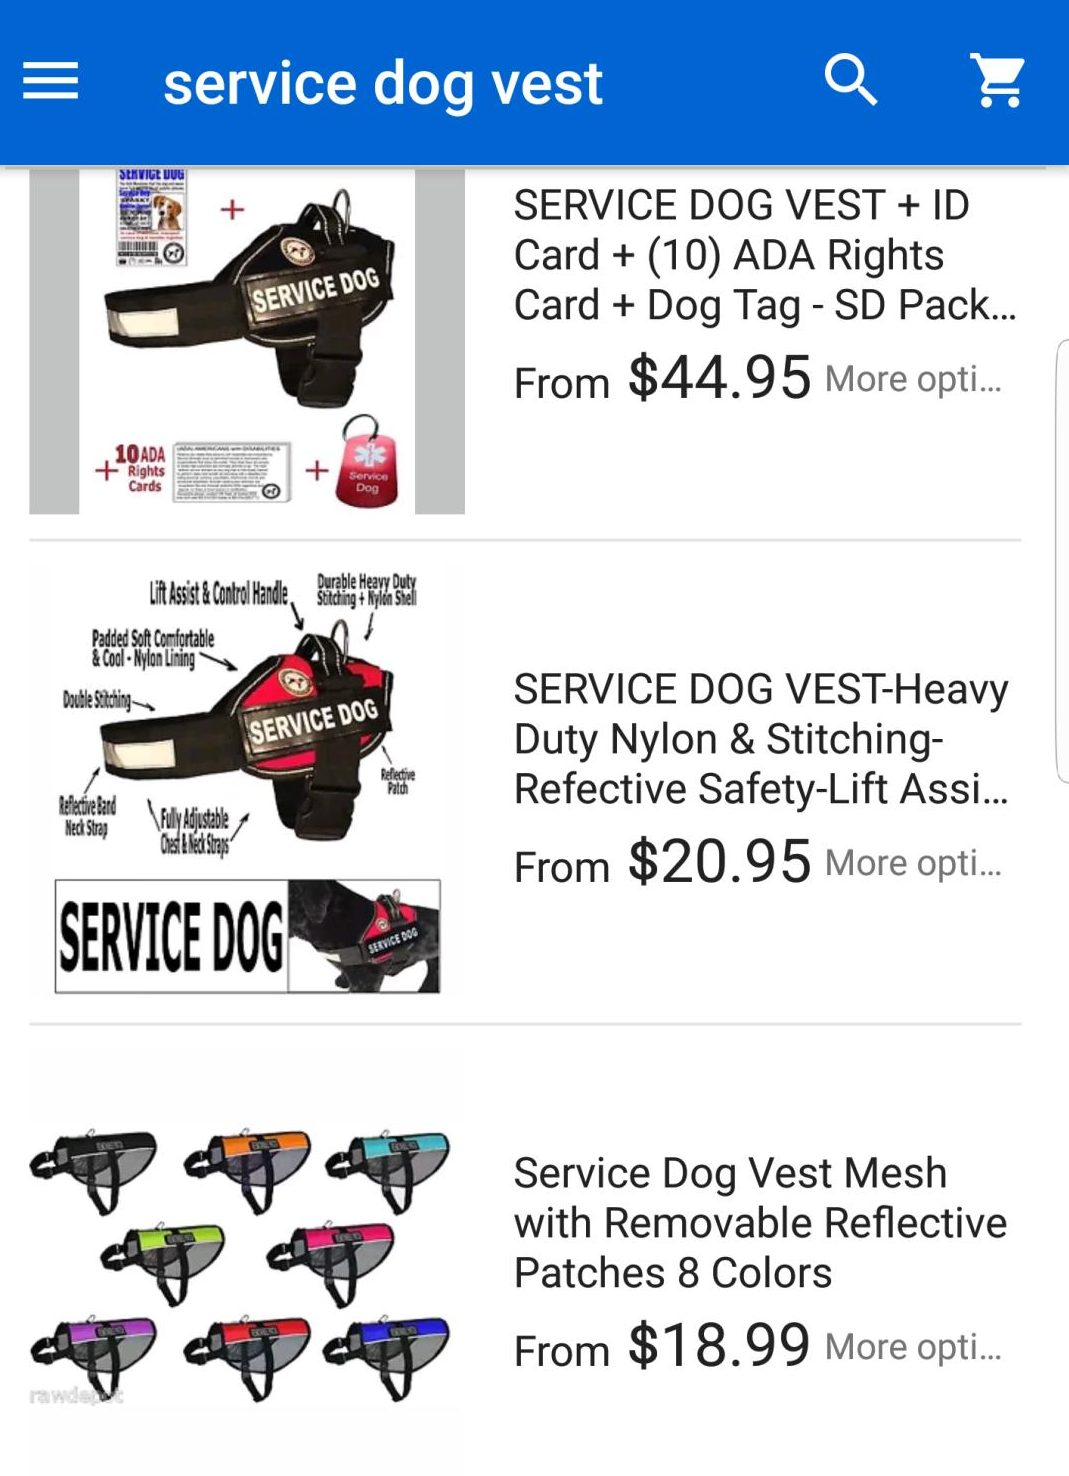 Resident seeks to educate public about service dogs whatsupnewp examples of generic service dog vests being sold online 1betcityfo Images